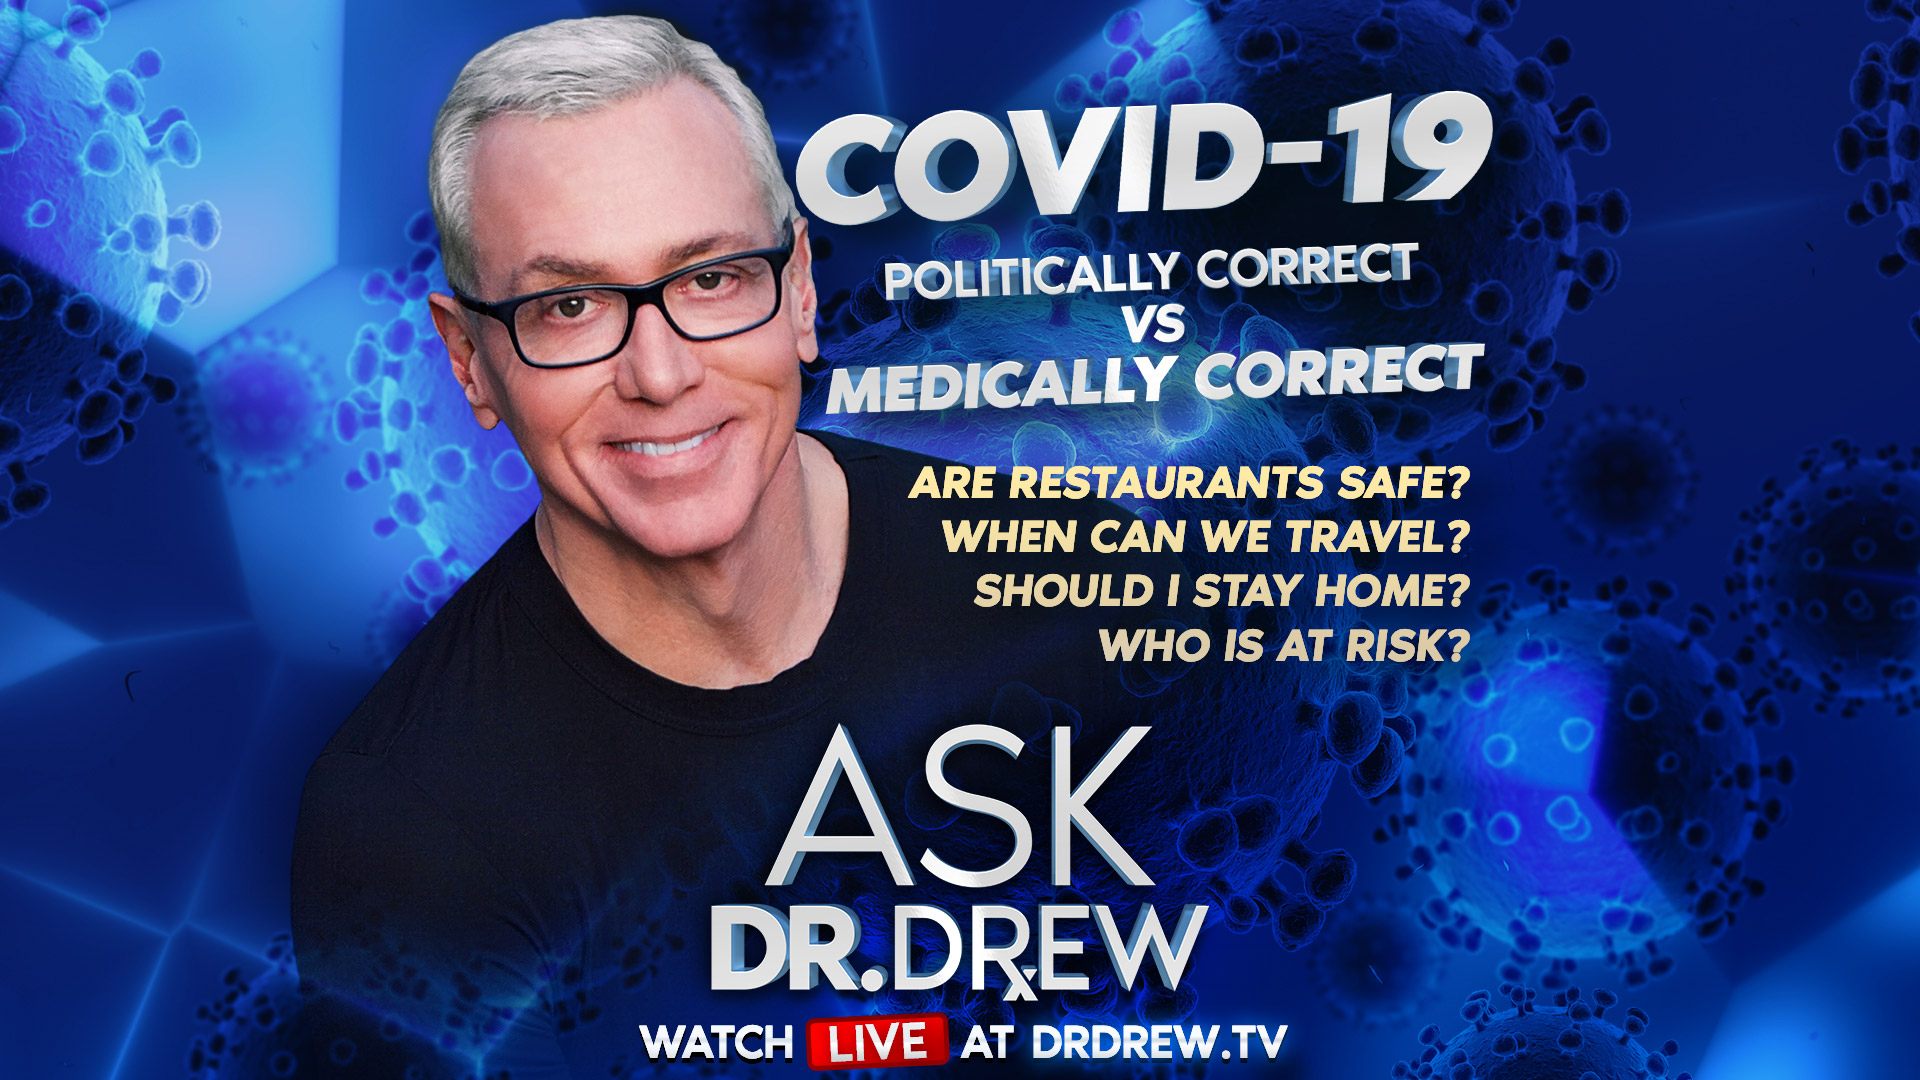 COVID-19 Answers: Politically Correct vs. Medically Correct – Ask Dr. Drew